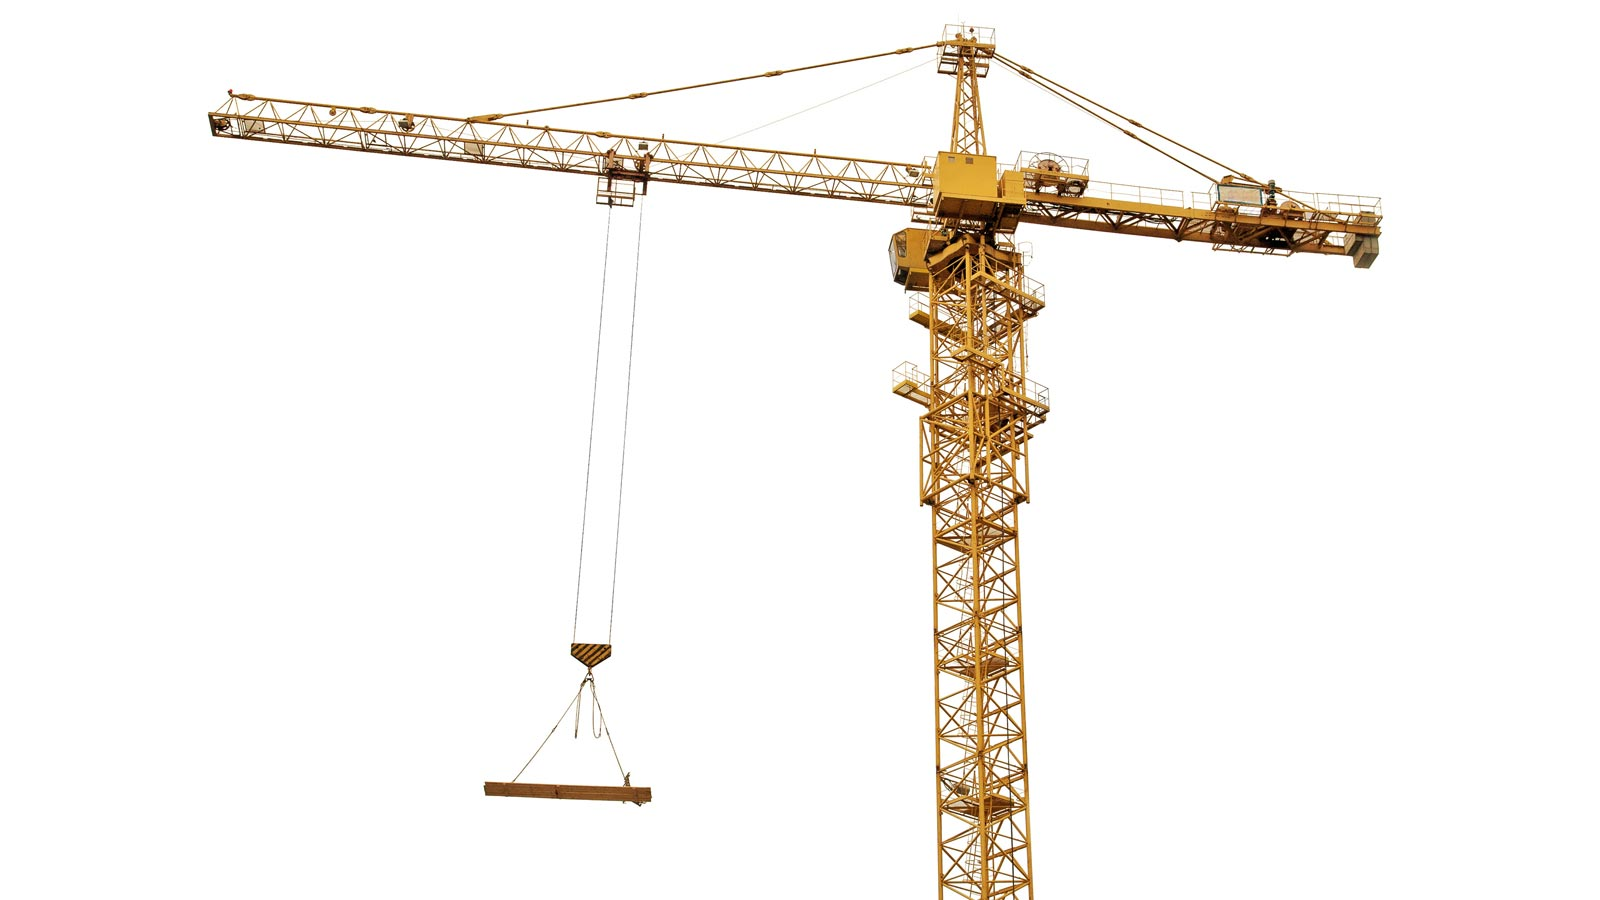 Real estate developers need to know all their options when it comes to insurance